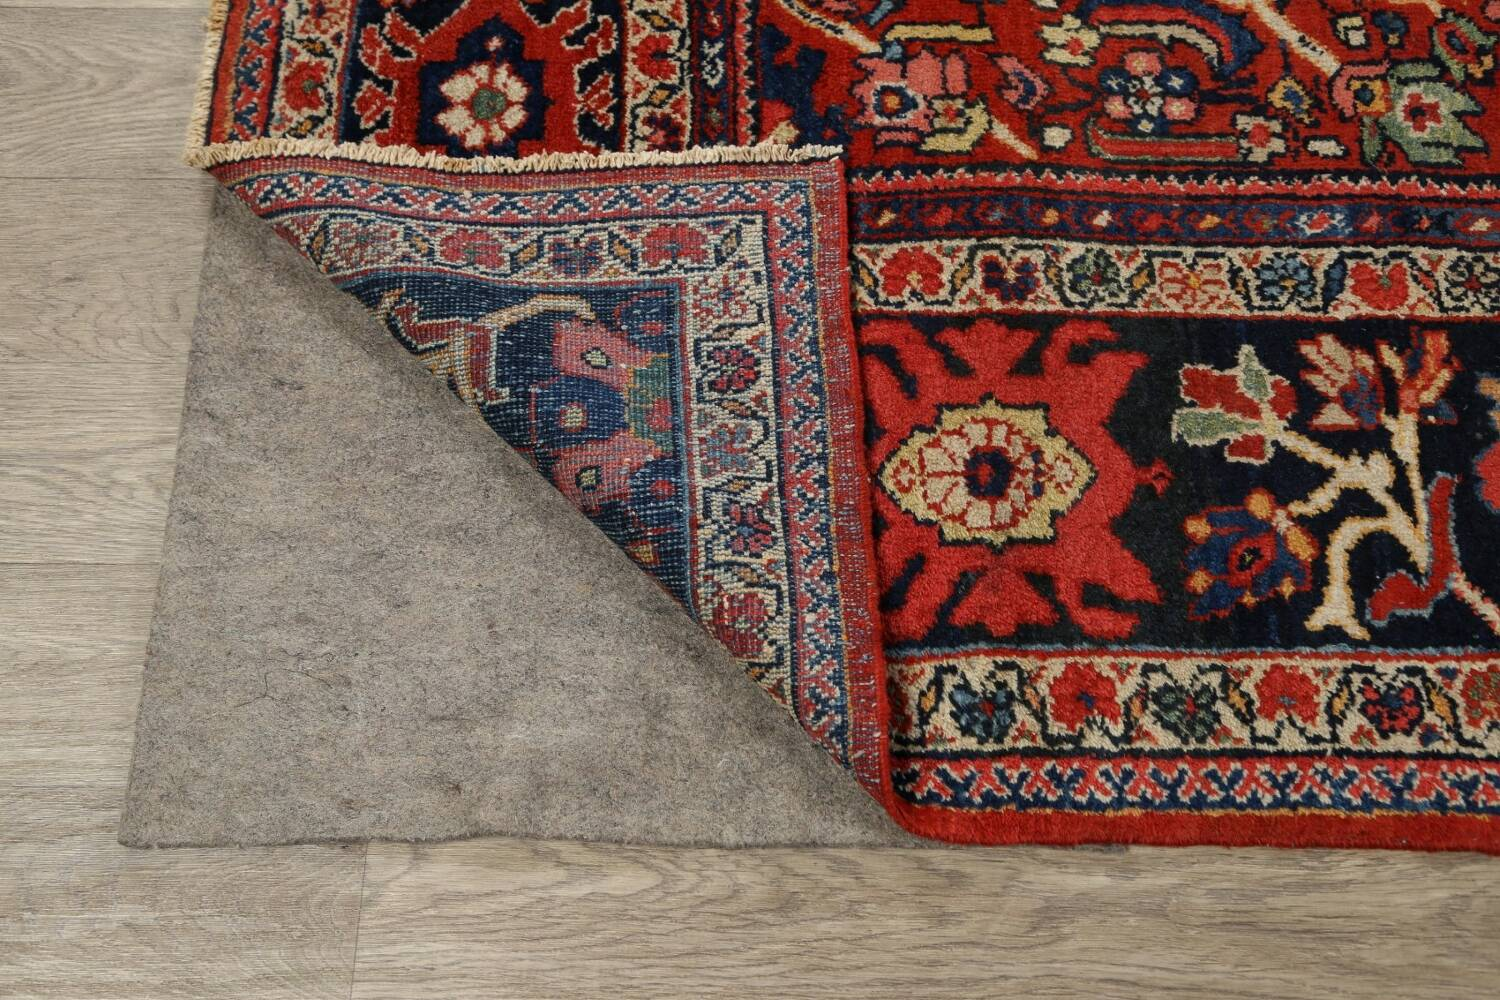 Antique Vegetable Dye Sultanabad Persian Area Rug 9x12 image 7